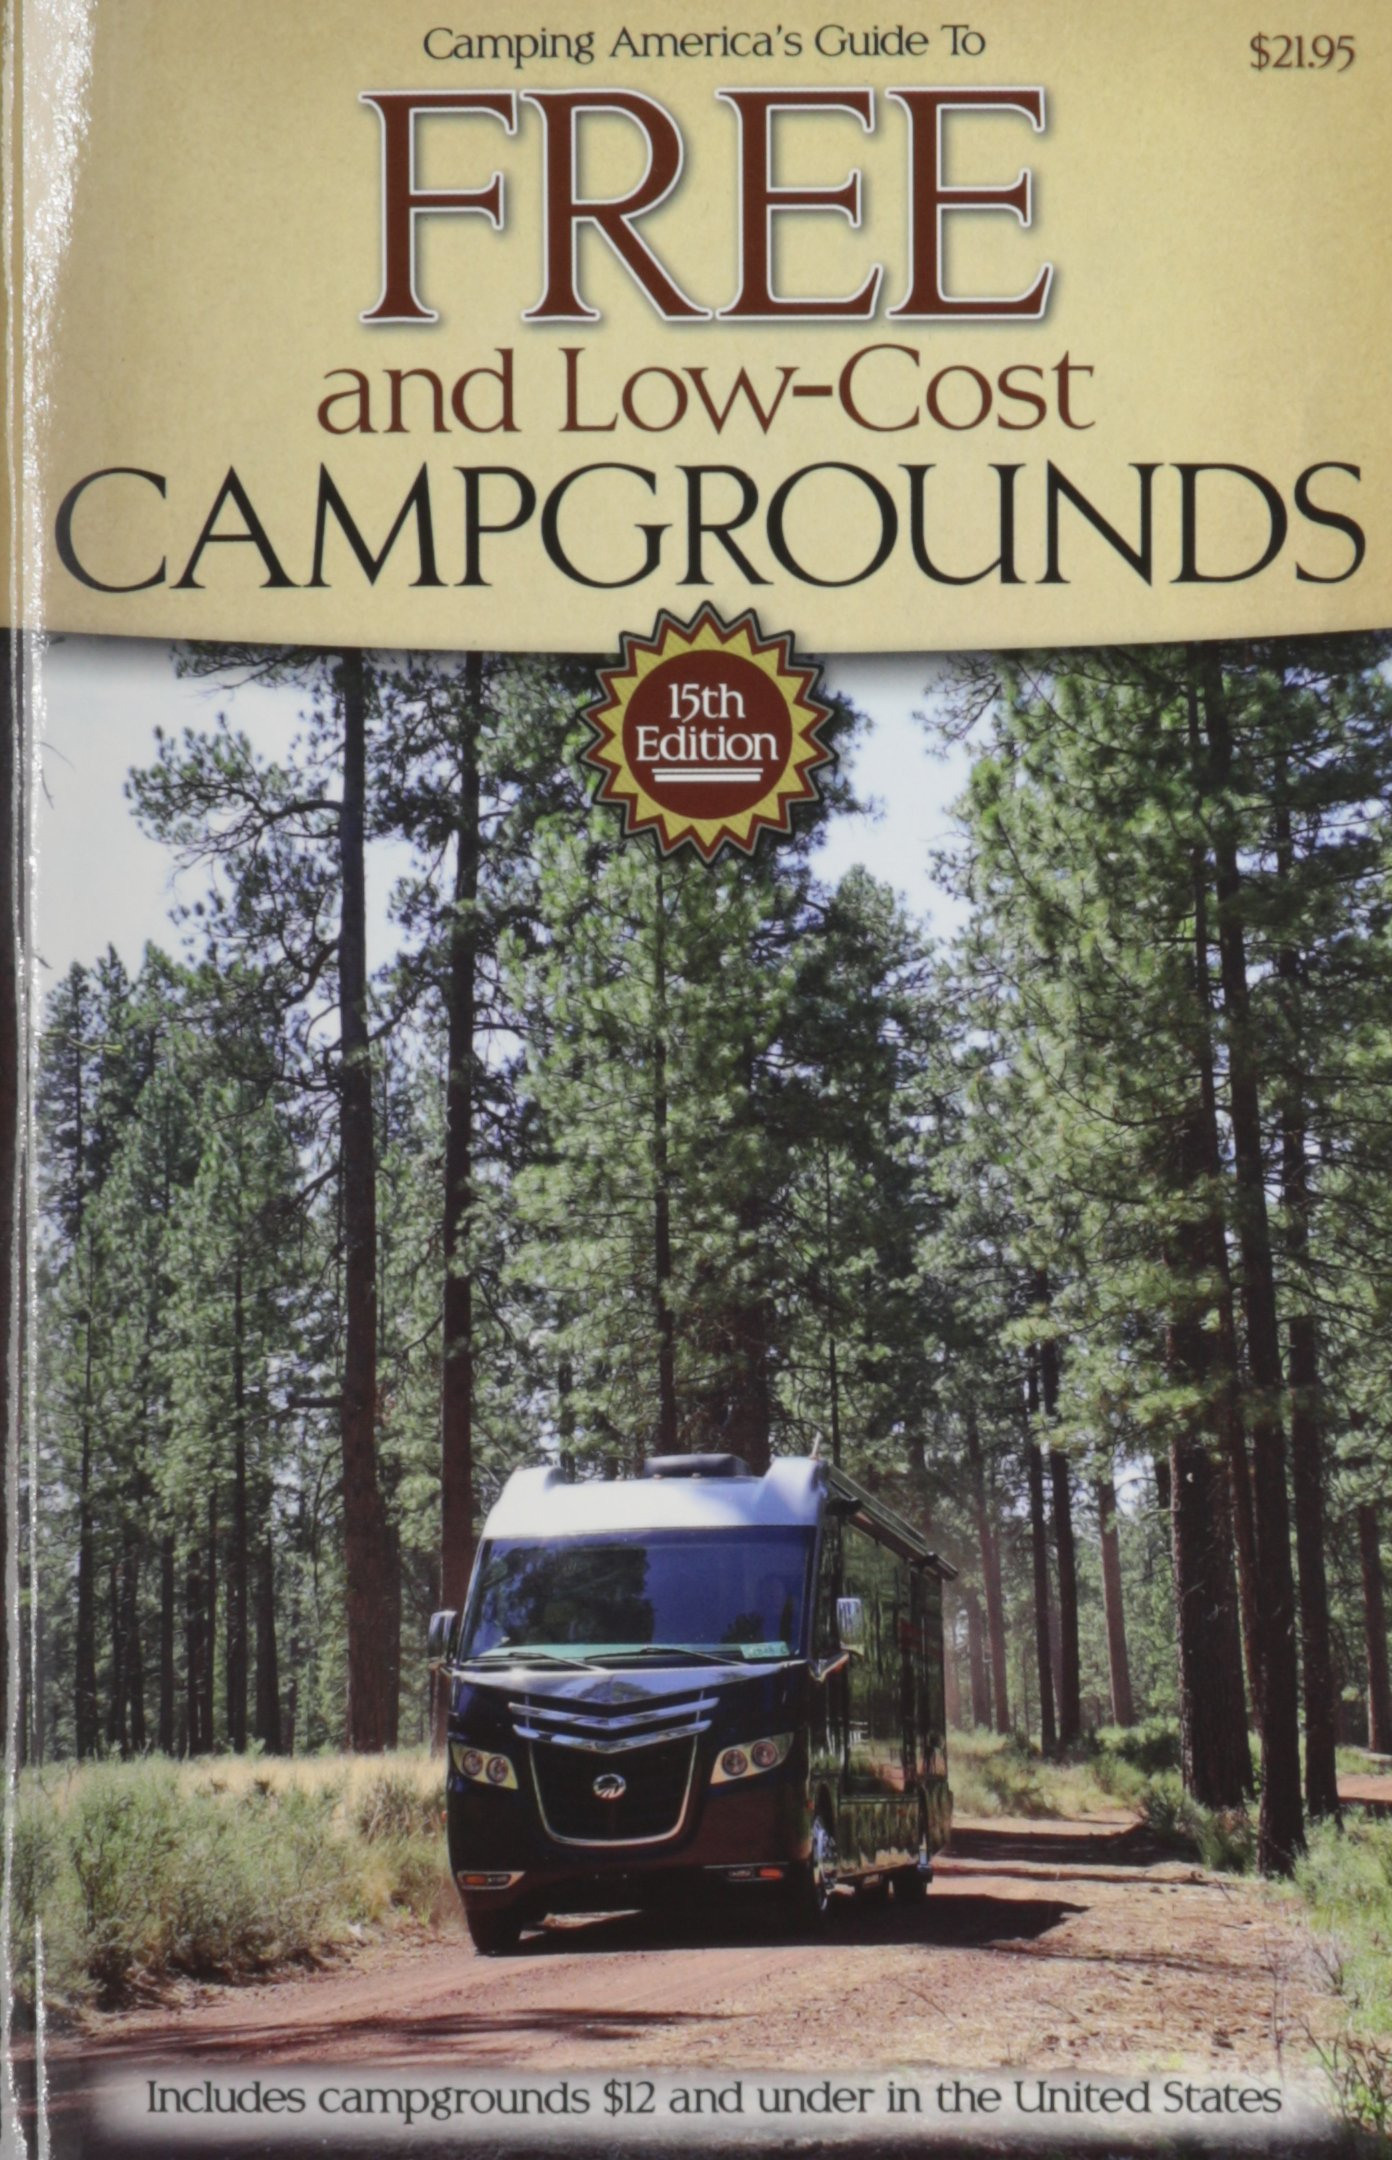 Camping Americas Guide Low Cost Campgrounds product image